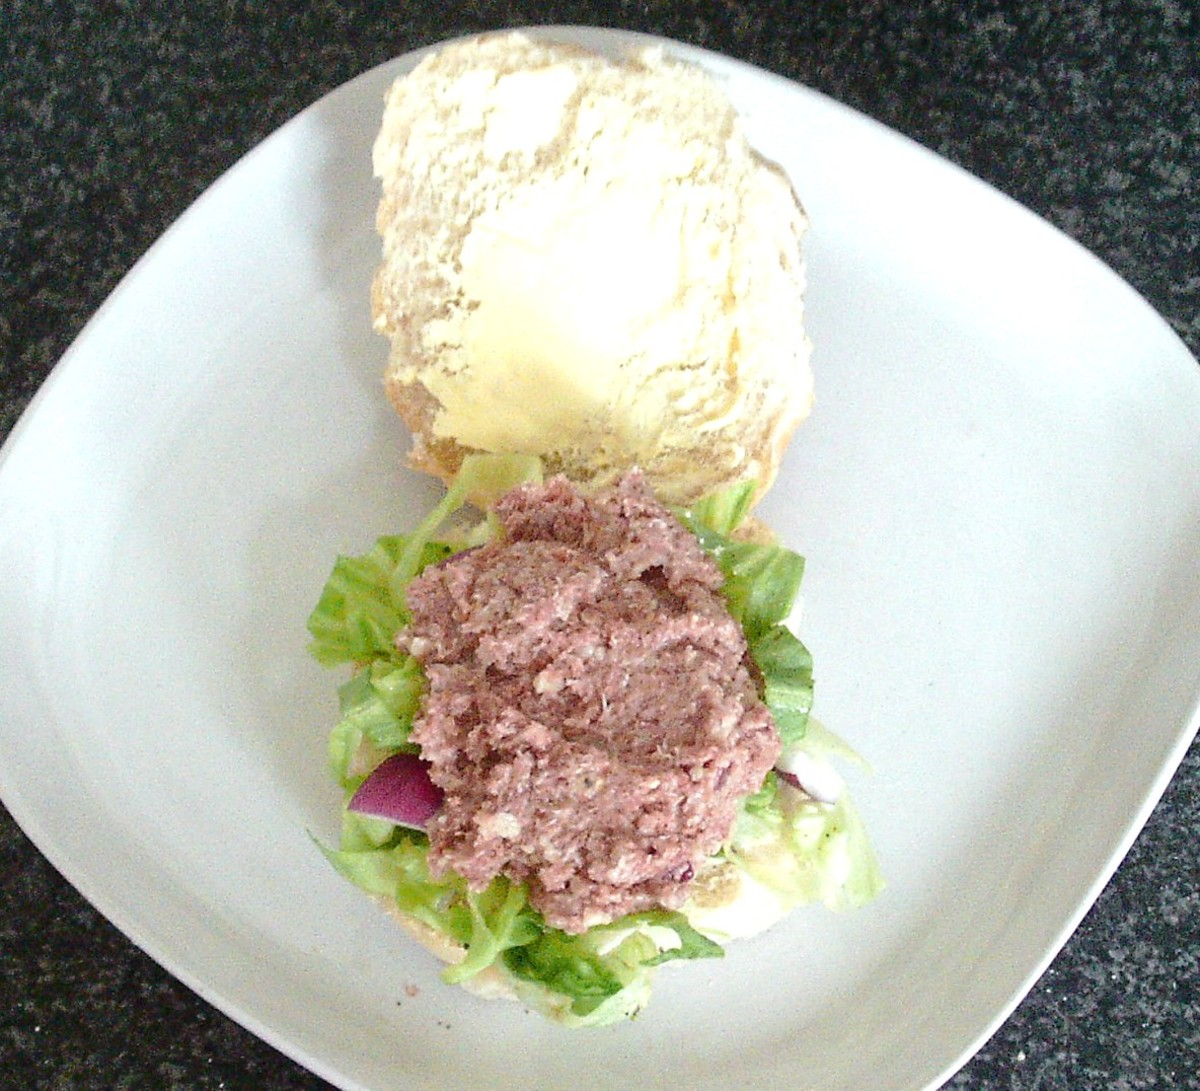 Corned beef mash is spooned on to salad bed